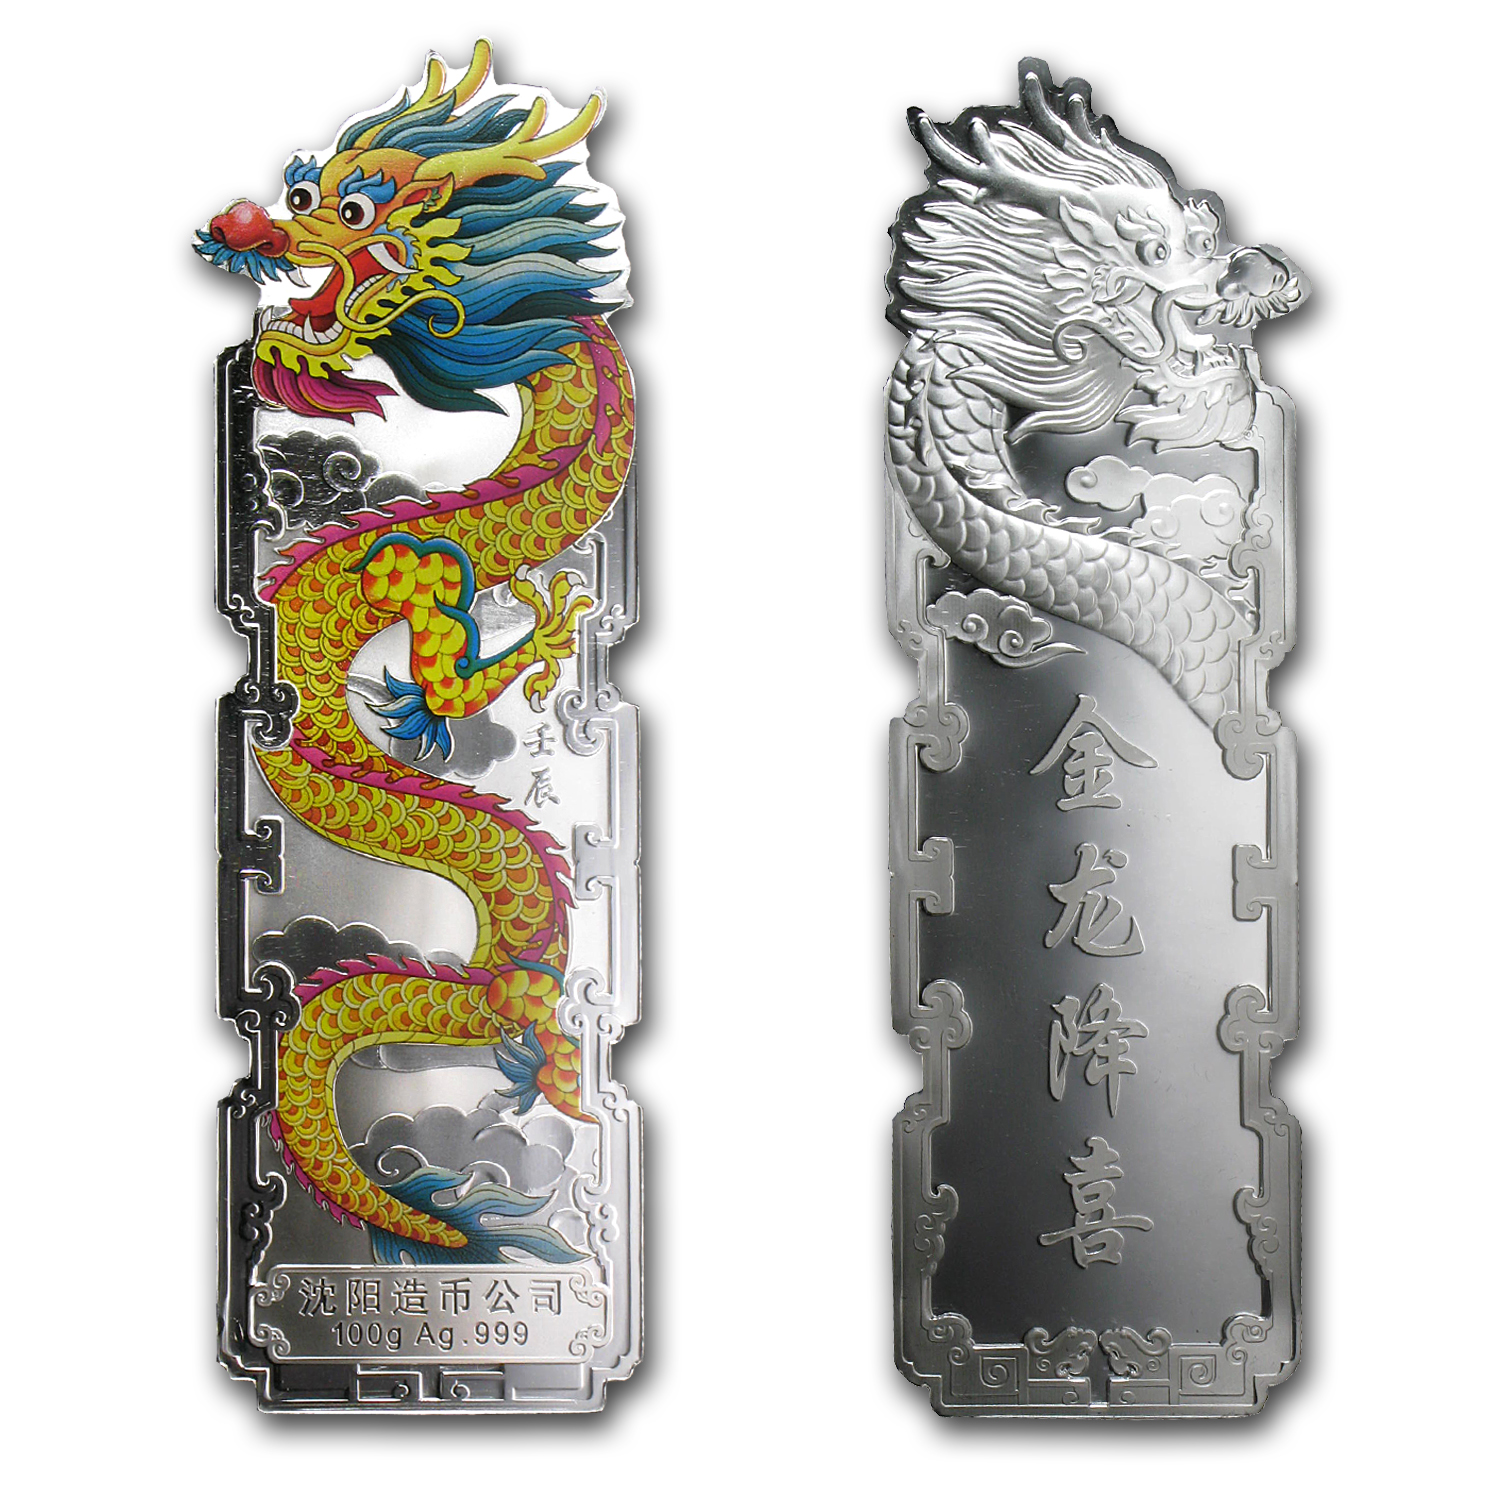 100 gram Silver Bars - Year of the Dragon (2012/Colorized)